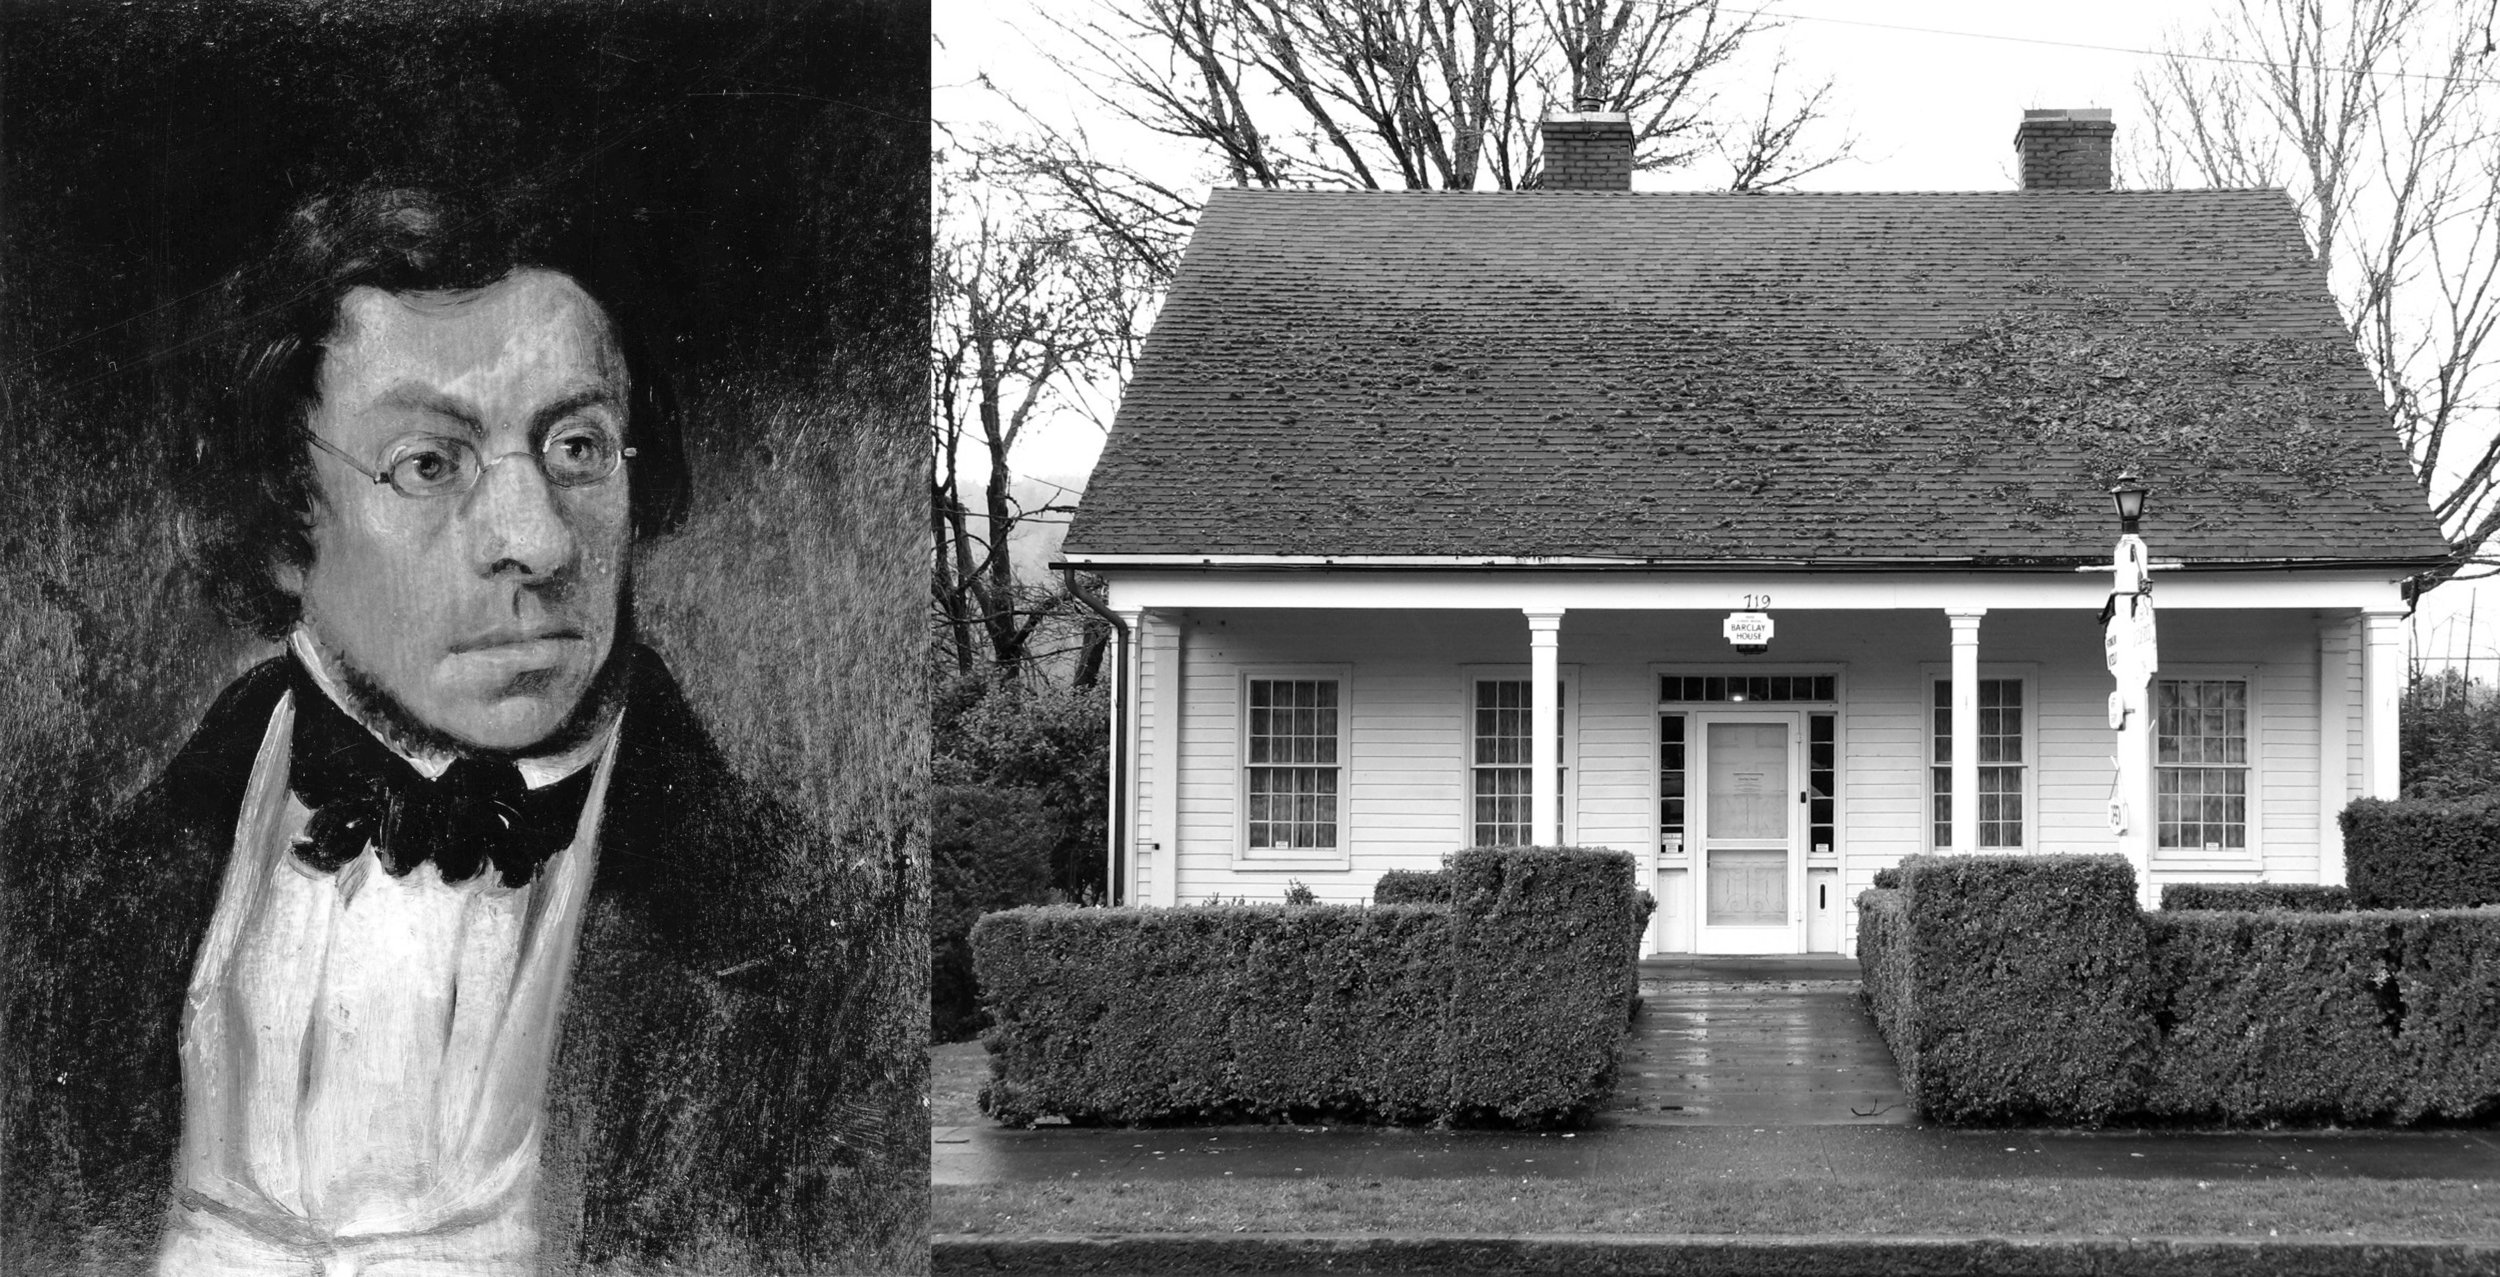 Dr. Forbes Barclay  of Oregon City and the house built for him by John L. Morrison. Unfortunately, I could not find a single photo of Morrison! At least his handiwork remains.